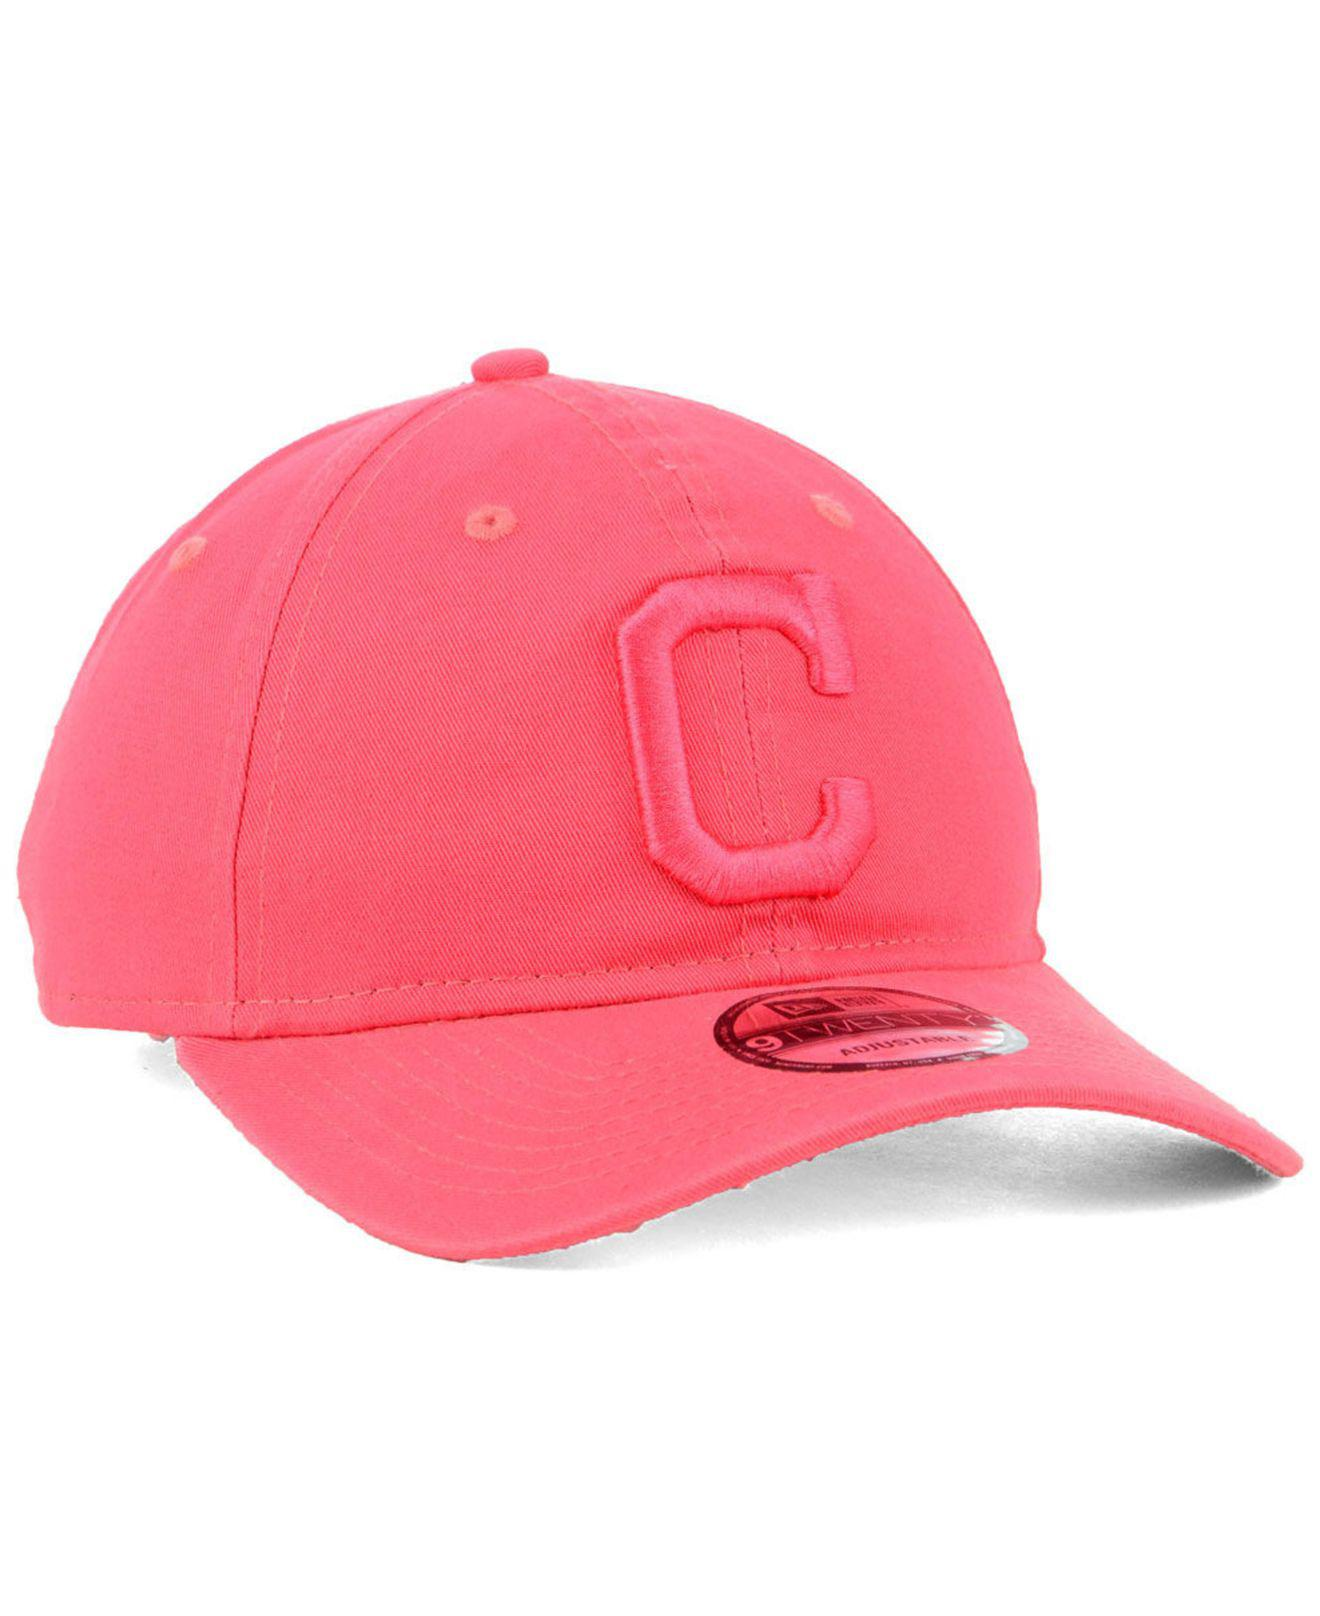 promo code 361ed ebdcd ... discount code for cleveland indians spring classic 9twenty cap lyst.  view fullscreen 4f8fc 4c097